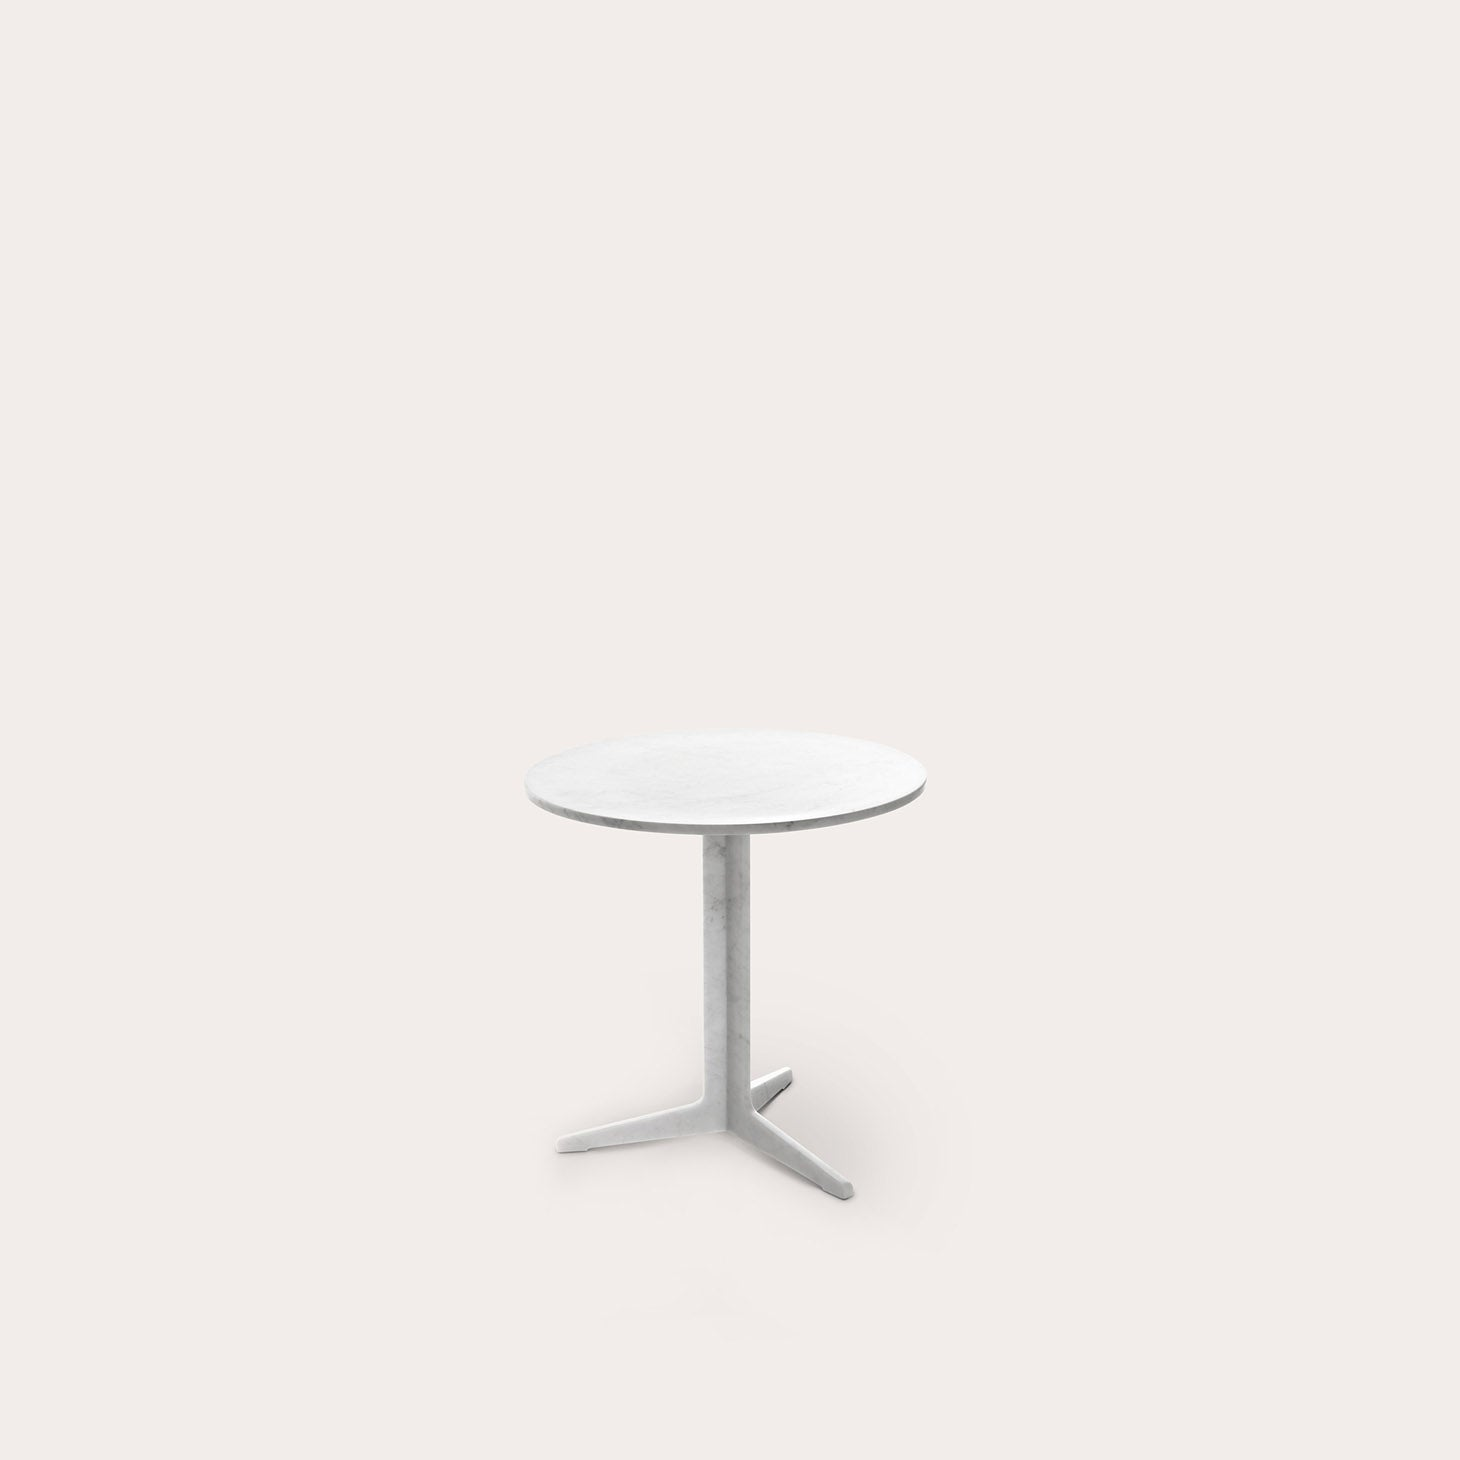 Jeeves 50 Tables Nendo Designer Furniture Sku: 625-230-10035